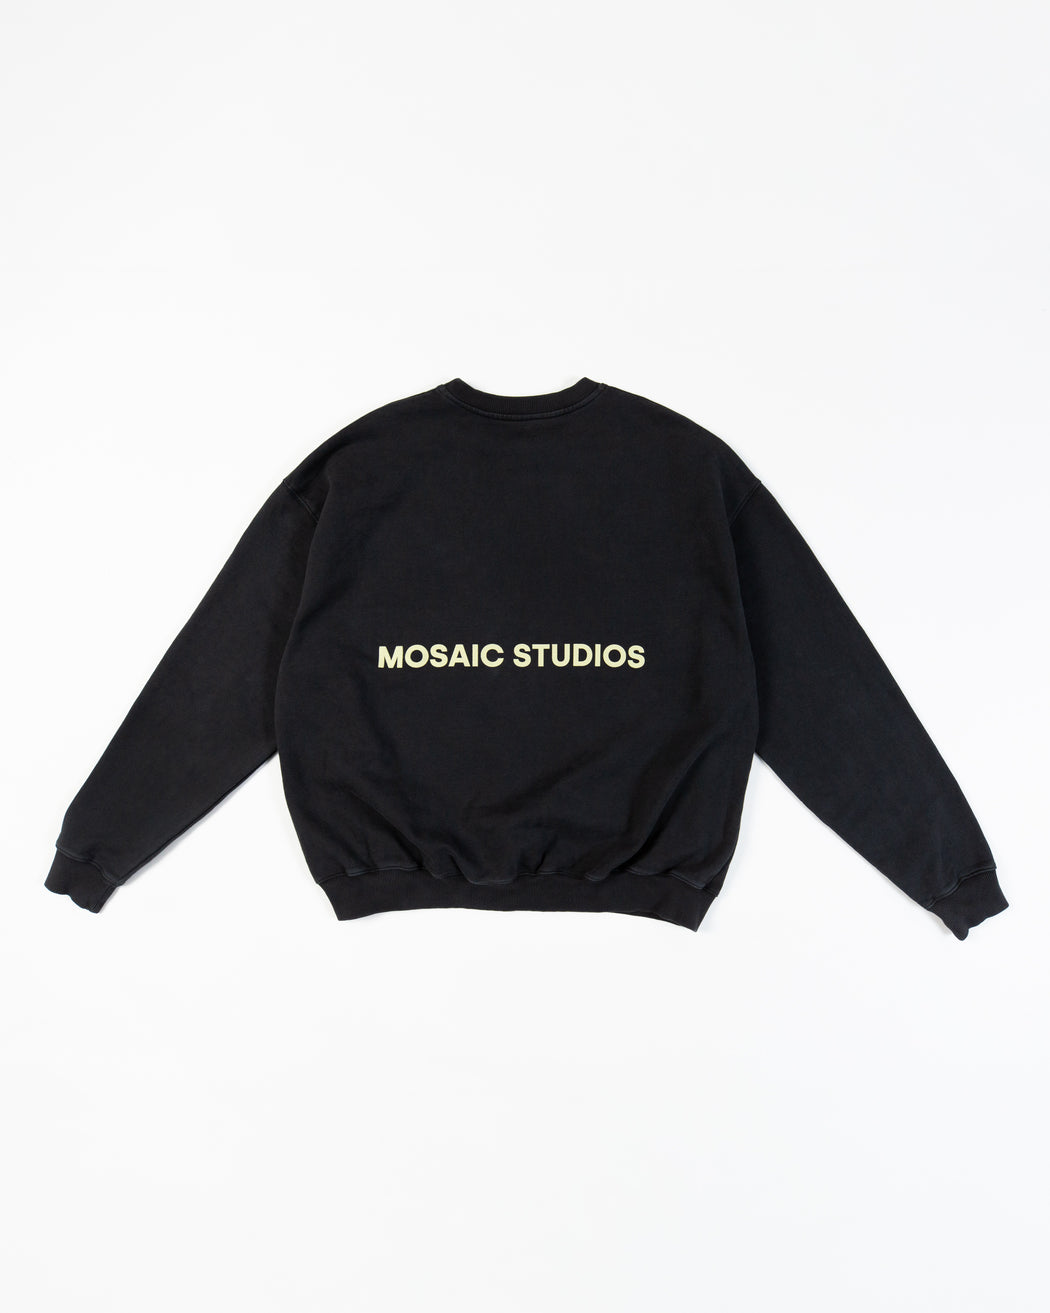 The Classic Crewneck